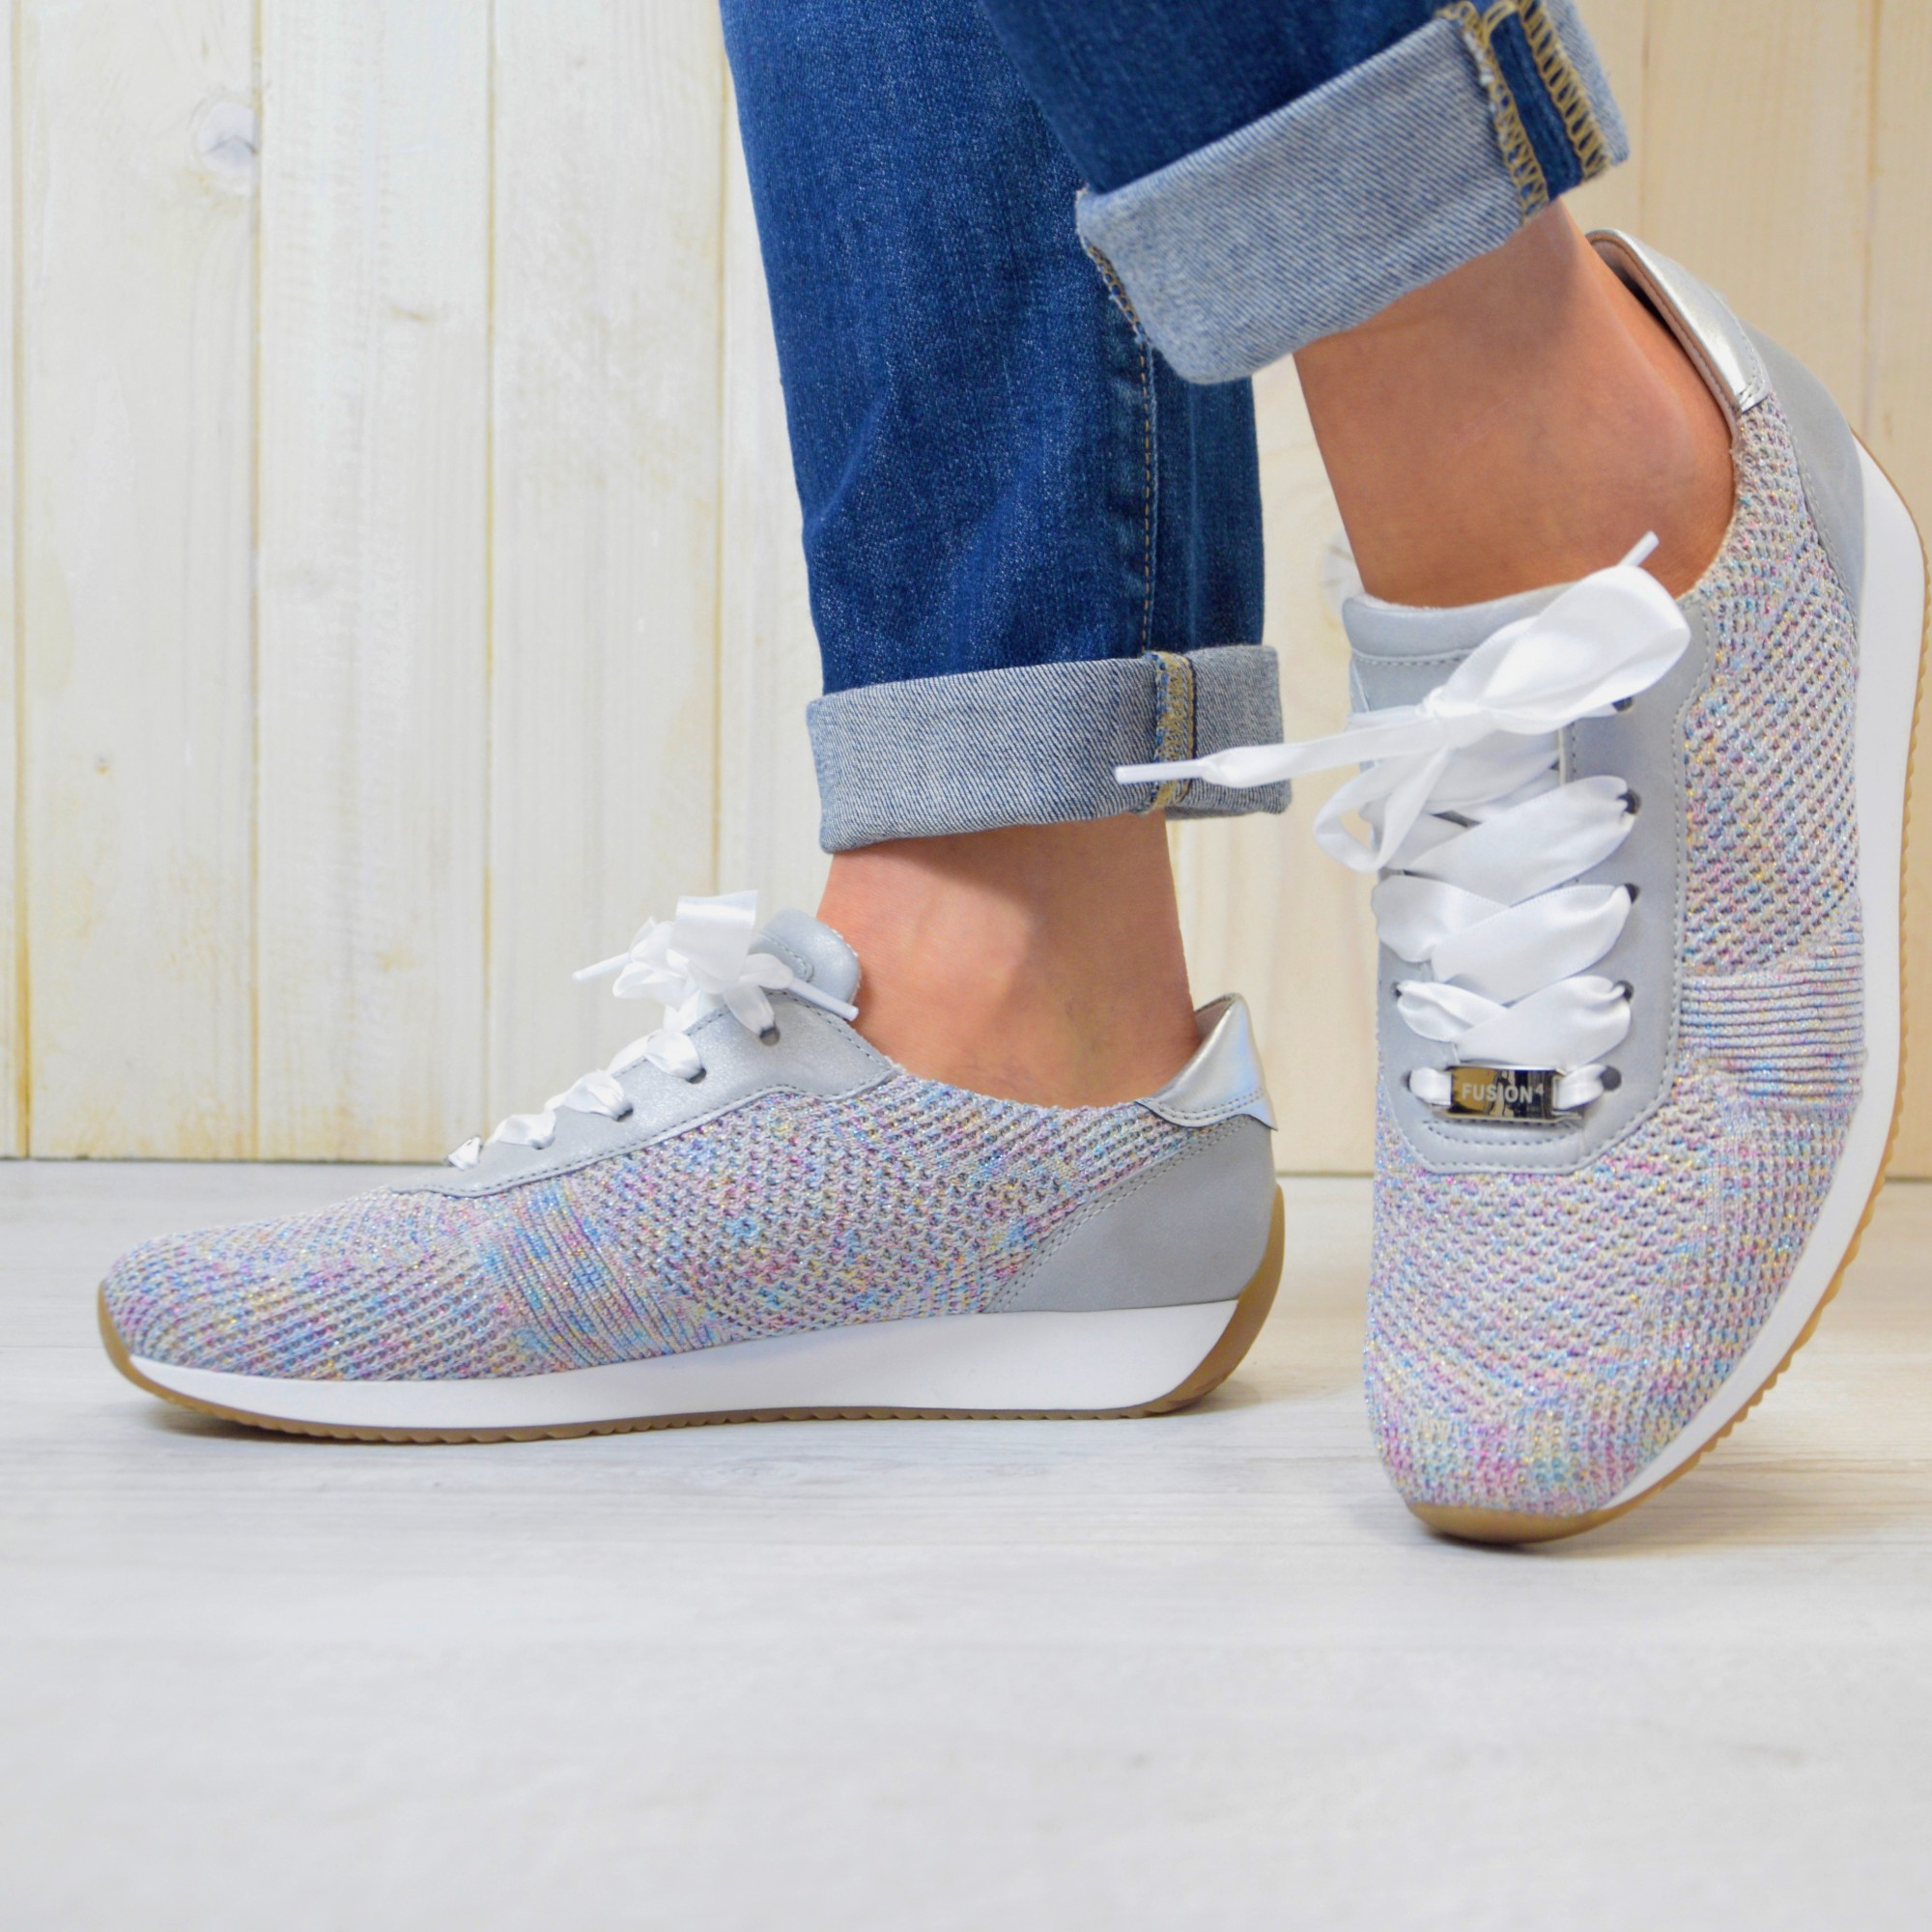 Women's Shoes & Sneakers | SNIPES